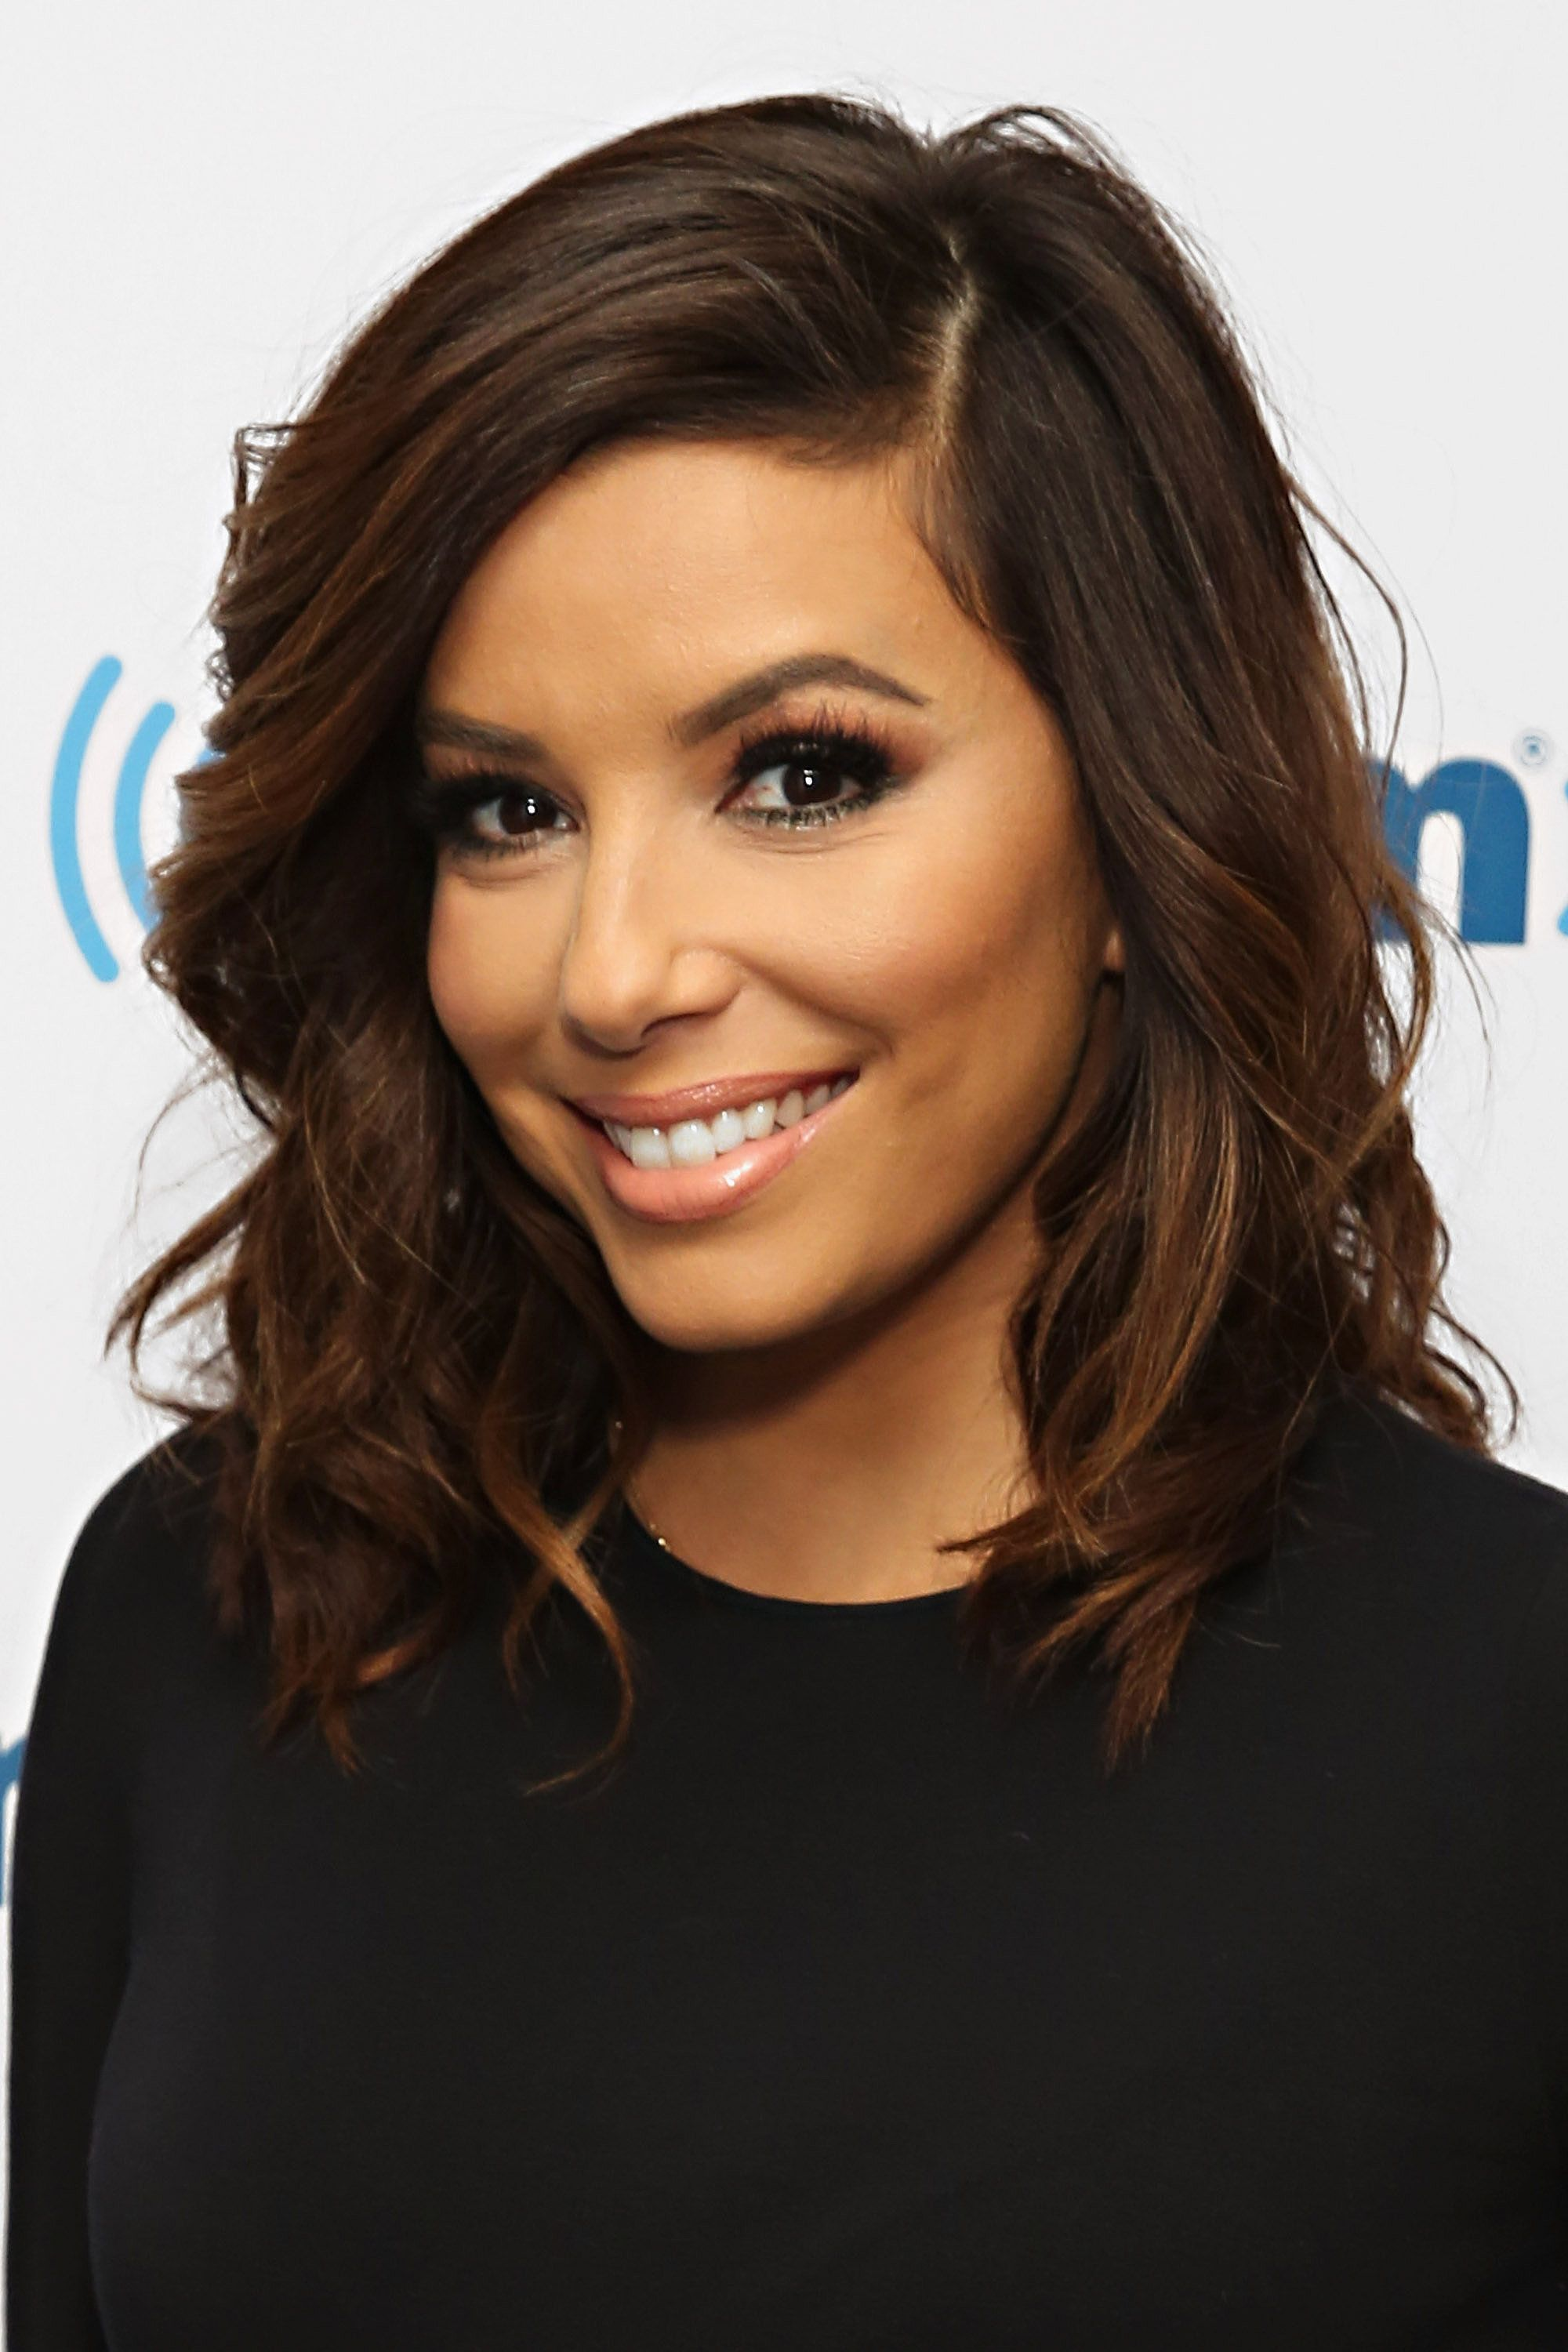 The strange makeup of Eva Longoria put her in an uncomfortable position 01/06/2011